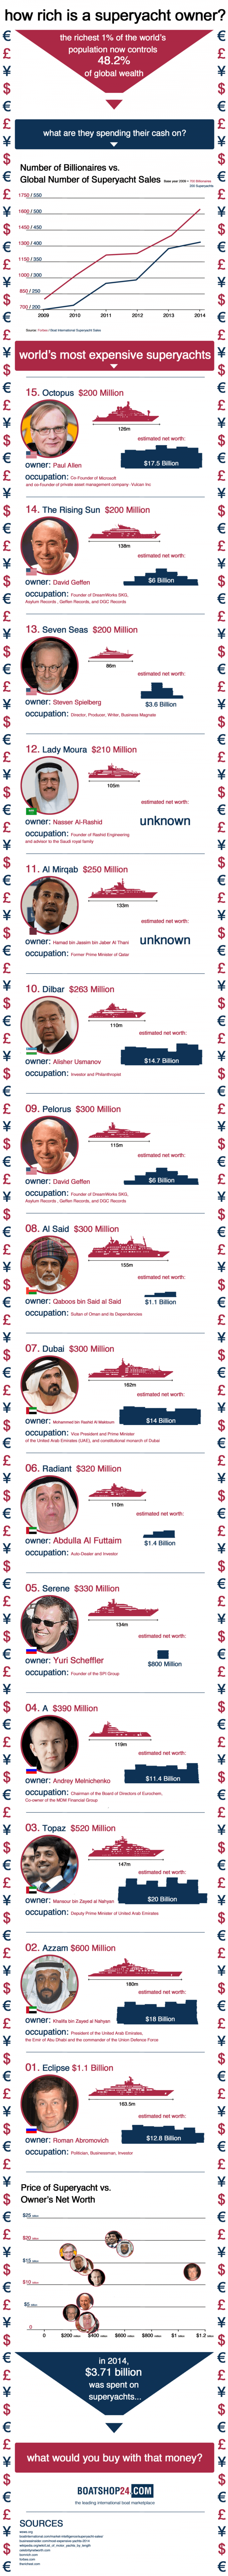 Billionaires-vs-Superyacht-Infographic-FINAL-e1425550882844